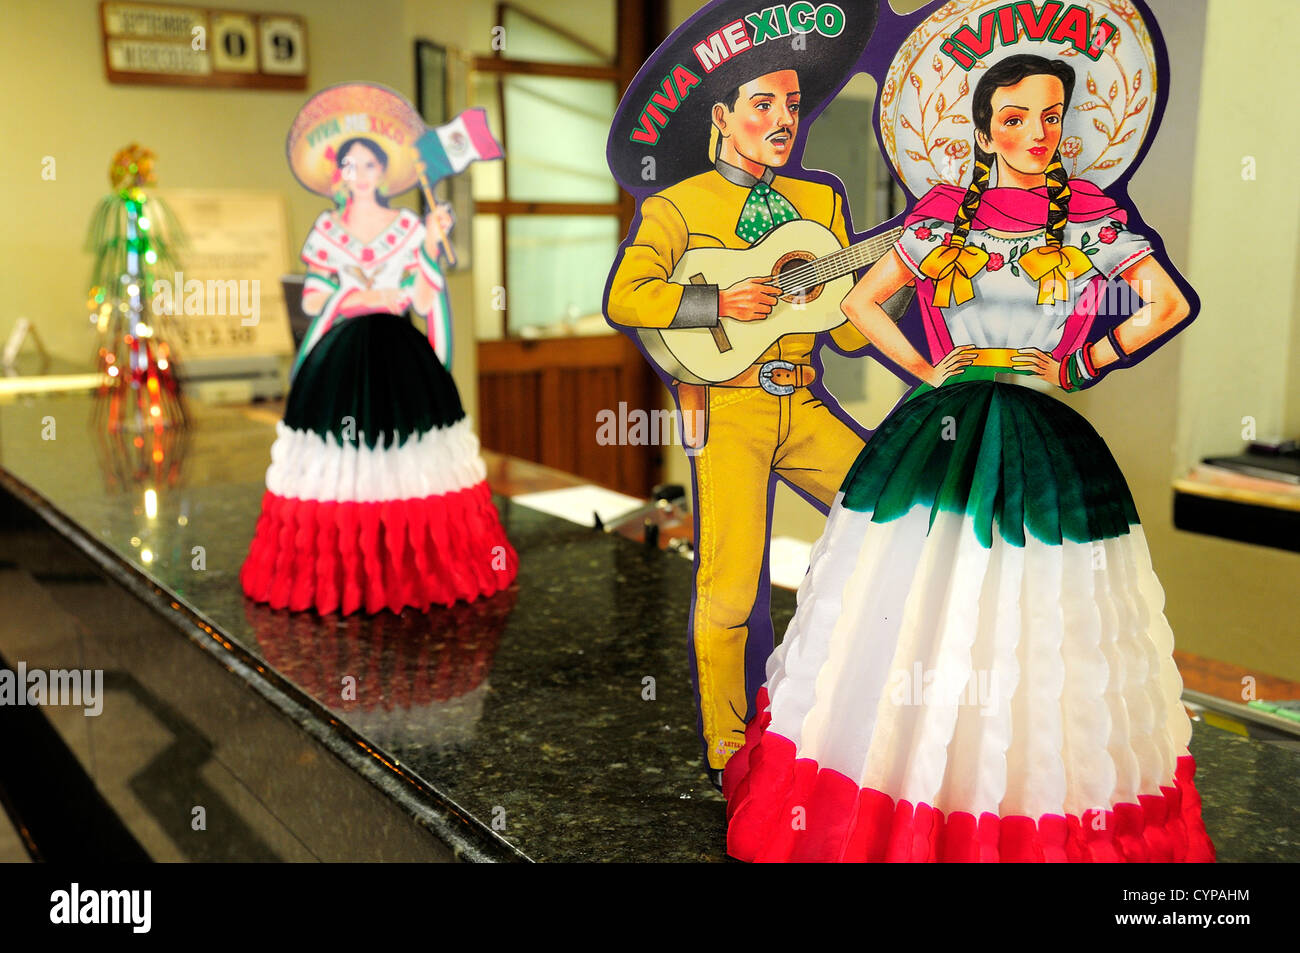 Mexican Independence Day Decorations American Hispanic Latin America Latino